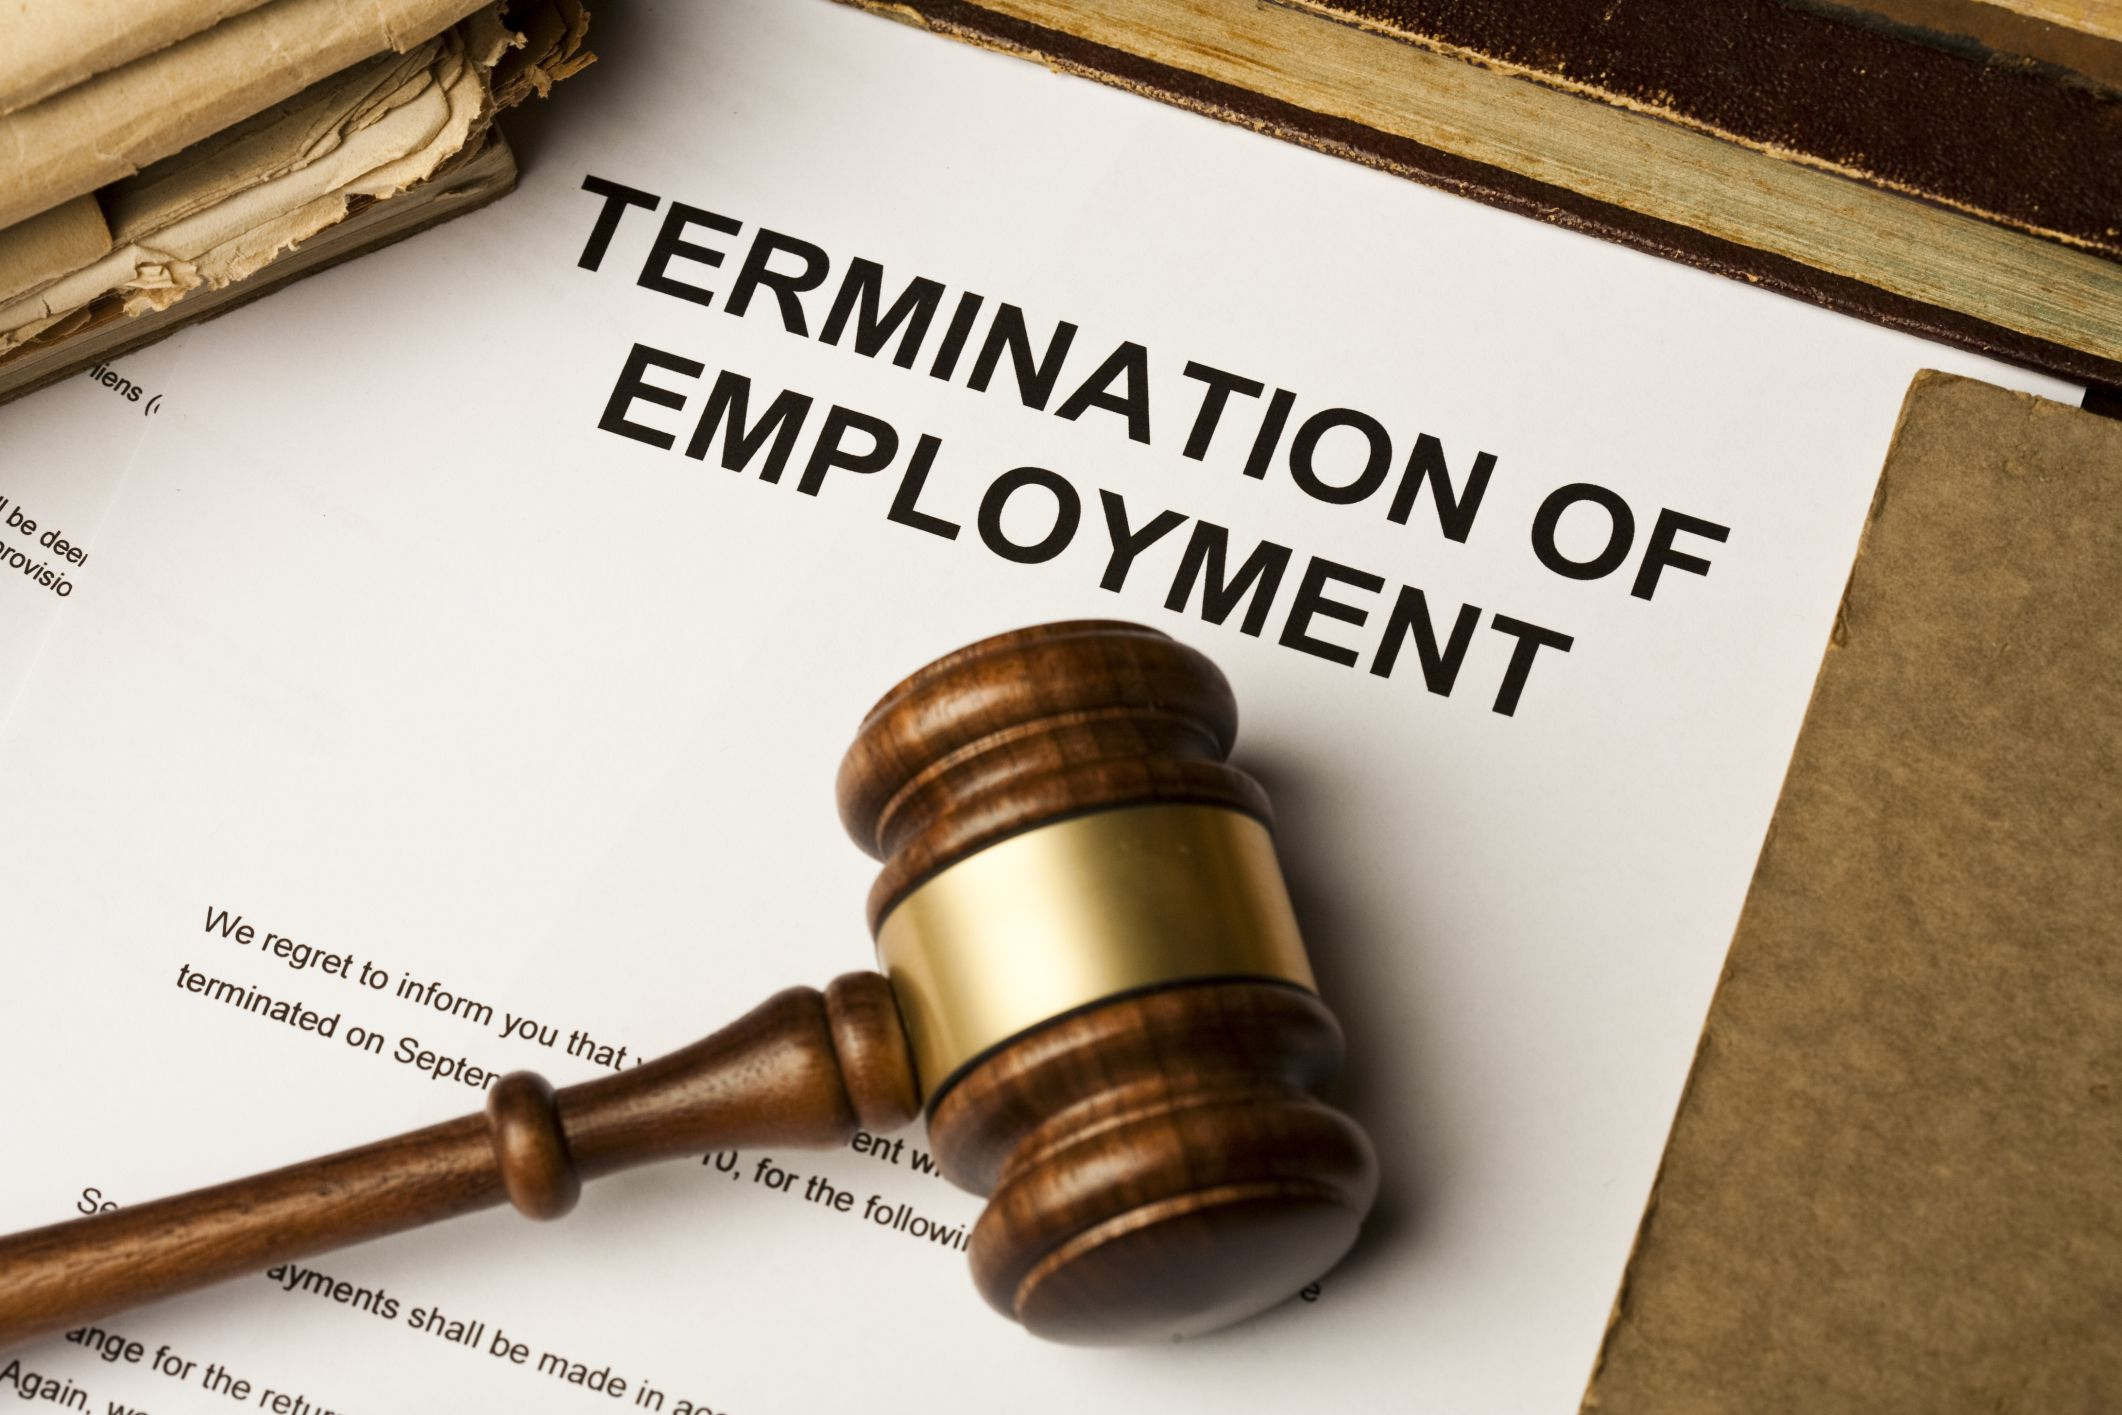 Terminated From Employment Definition